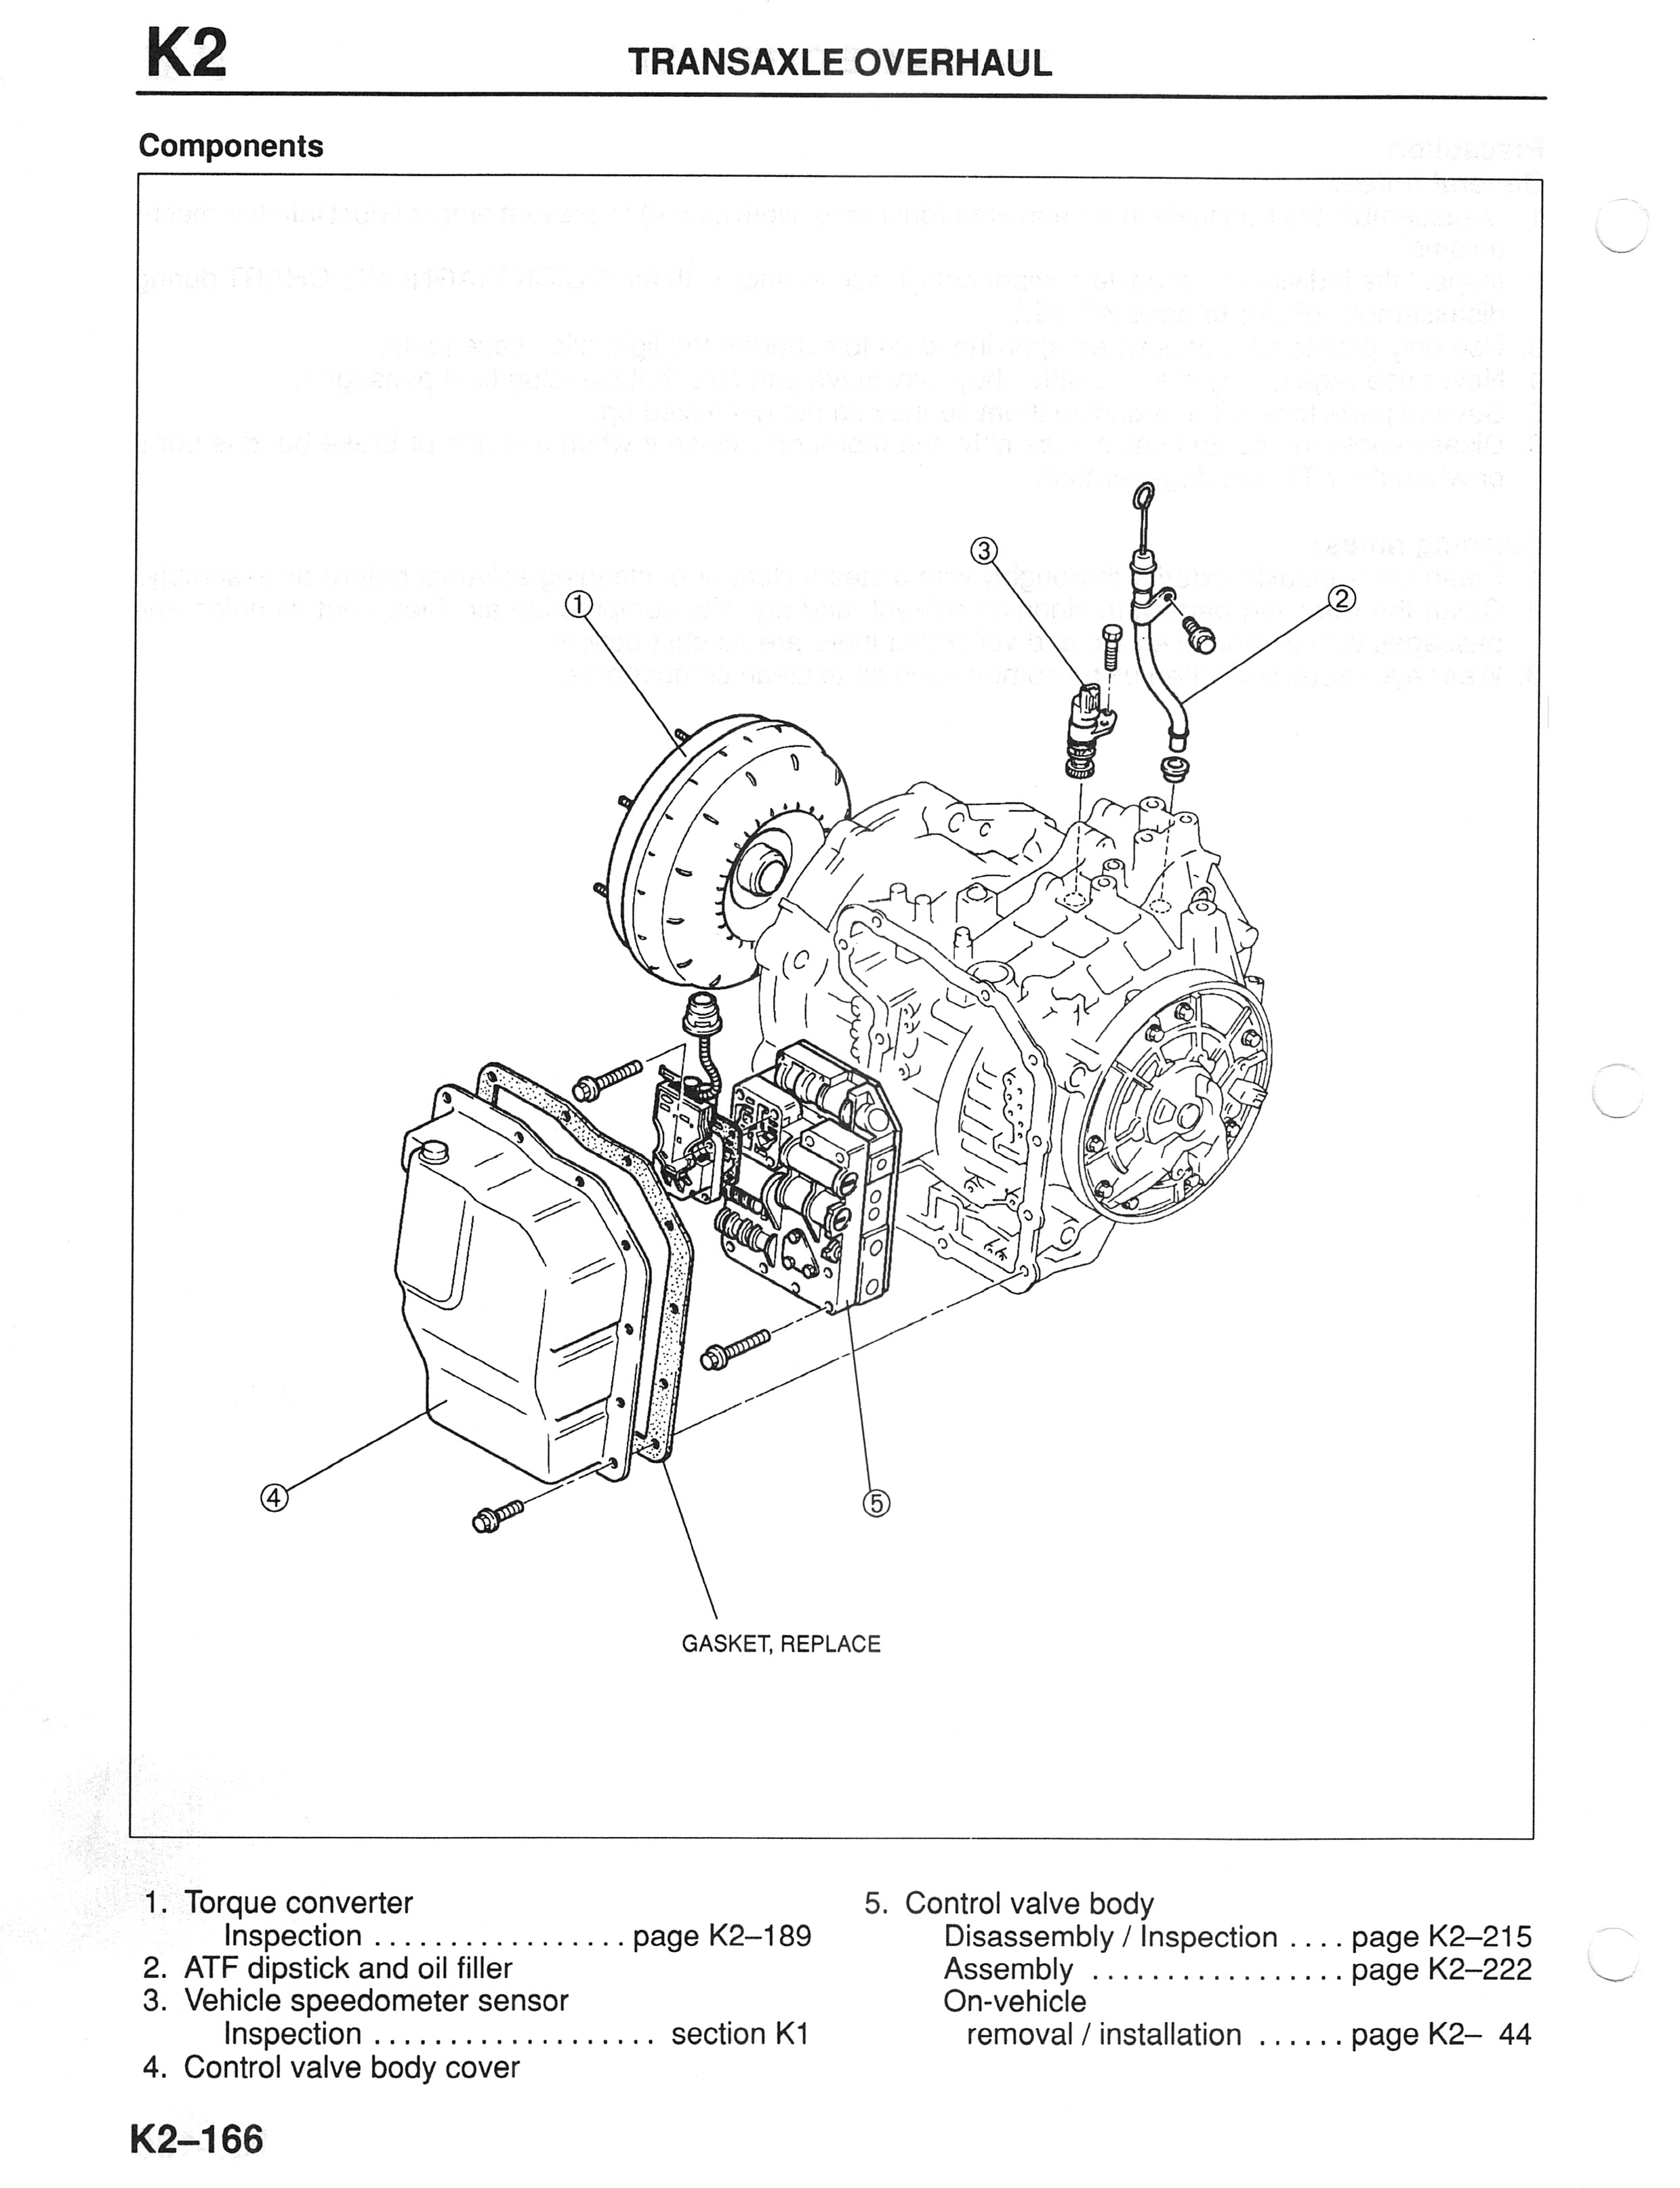 P 0996b43f8037e31c together with How To Diagnose An Issue With Your Cars Fuel Line together with RepairGuideContent besides 2003 Mazda B3000 Engine Diagram also 2000 Mazda 626 V6 Egr Location. on mazda wiring diagram of mpv fuel filter location